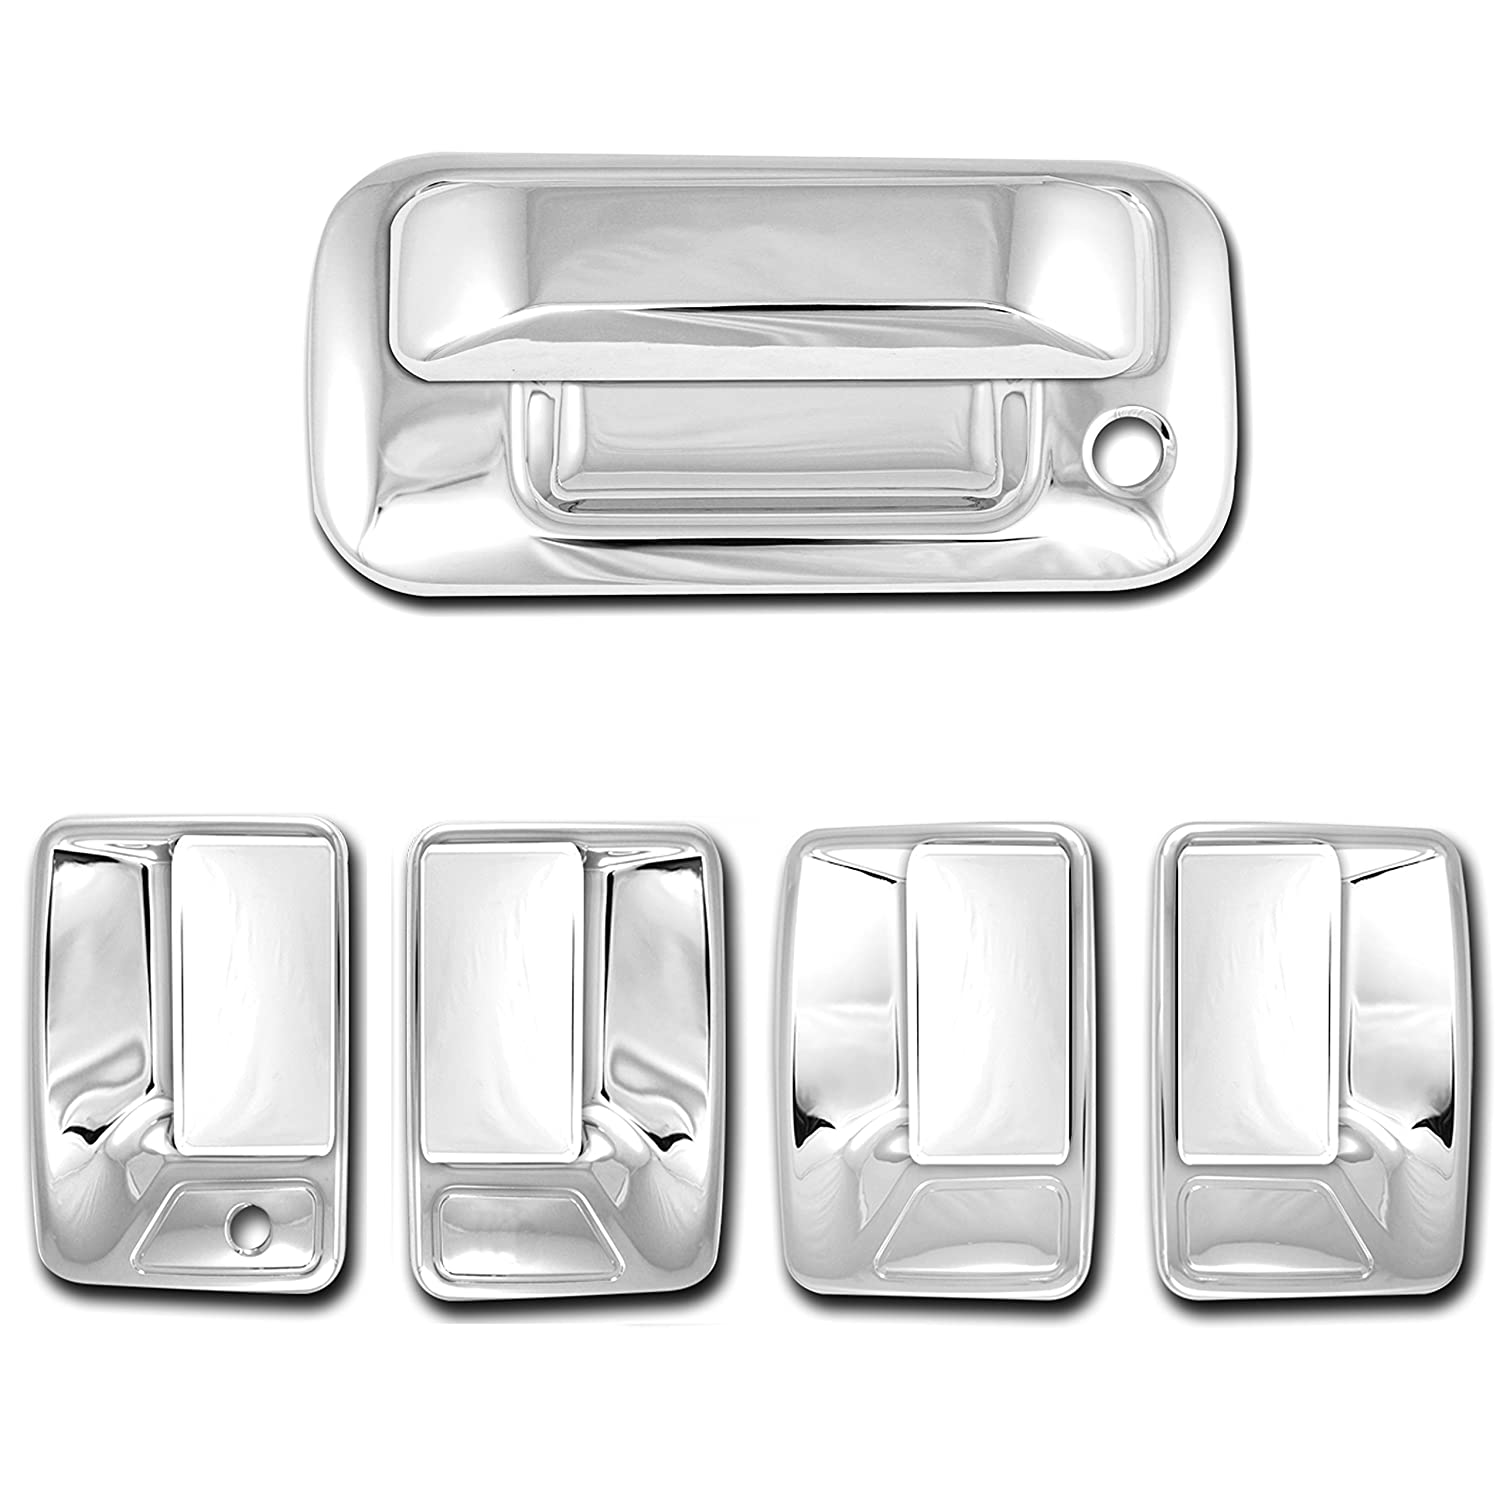 11-16 Ford Super Duty Chrome 2 Door Handle w//o PSG keyhole+Tailgate+Gas Cover